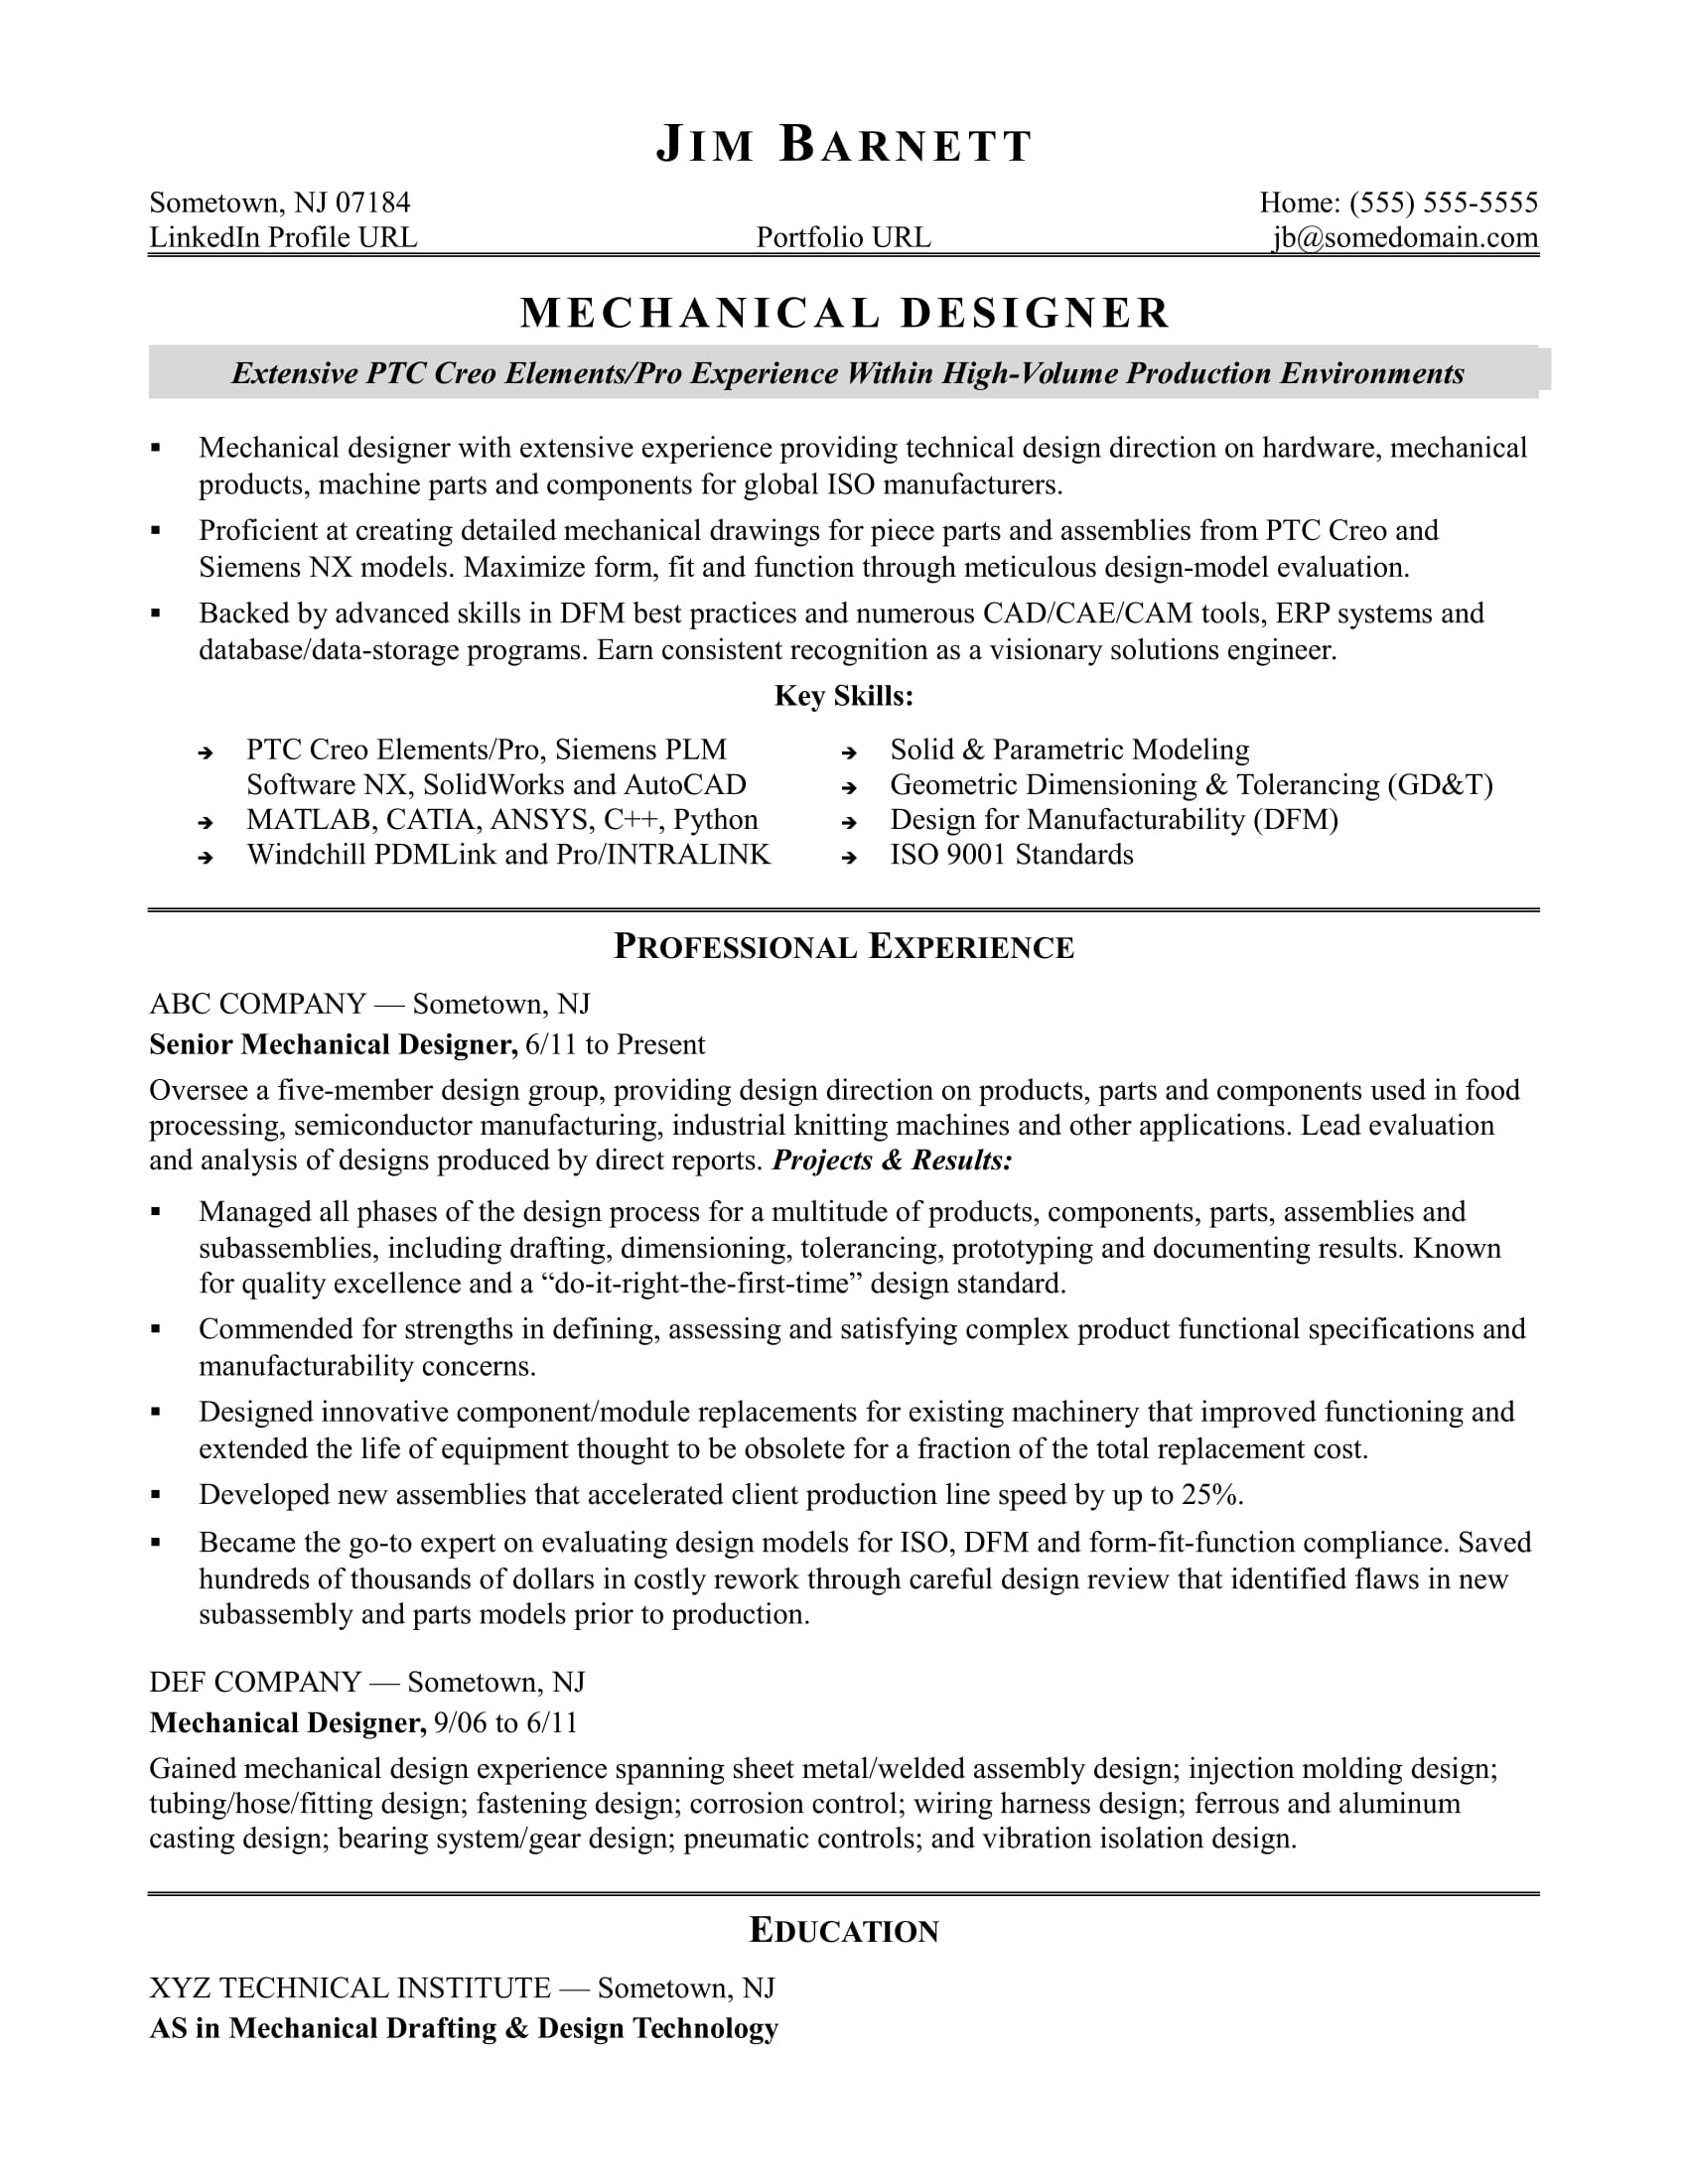 Sample Resume For An Experienced Mechanical Designer  Parts Of A Resume